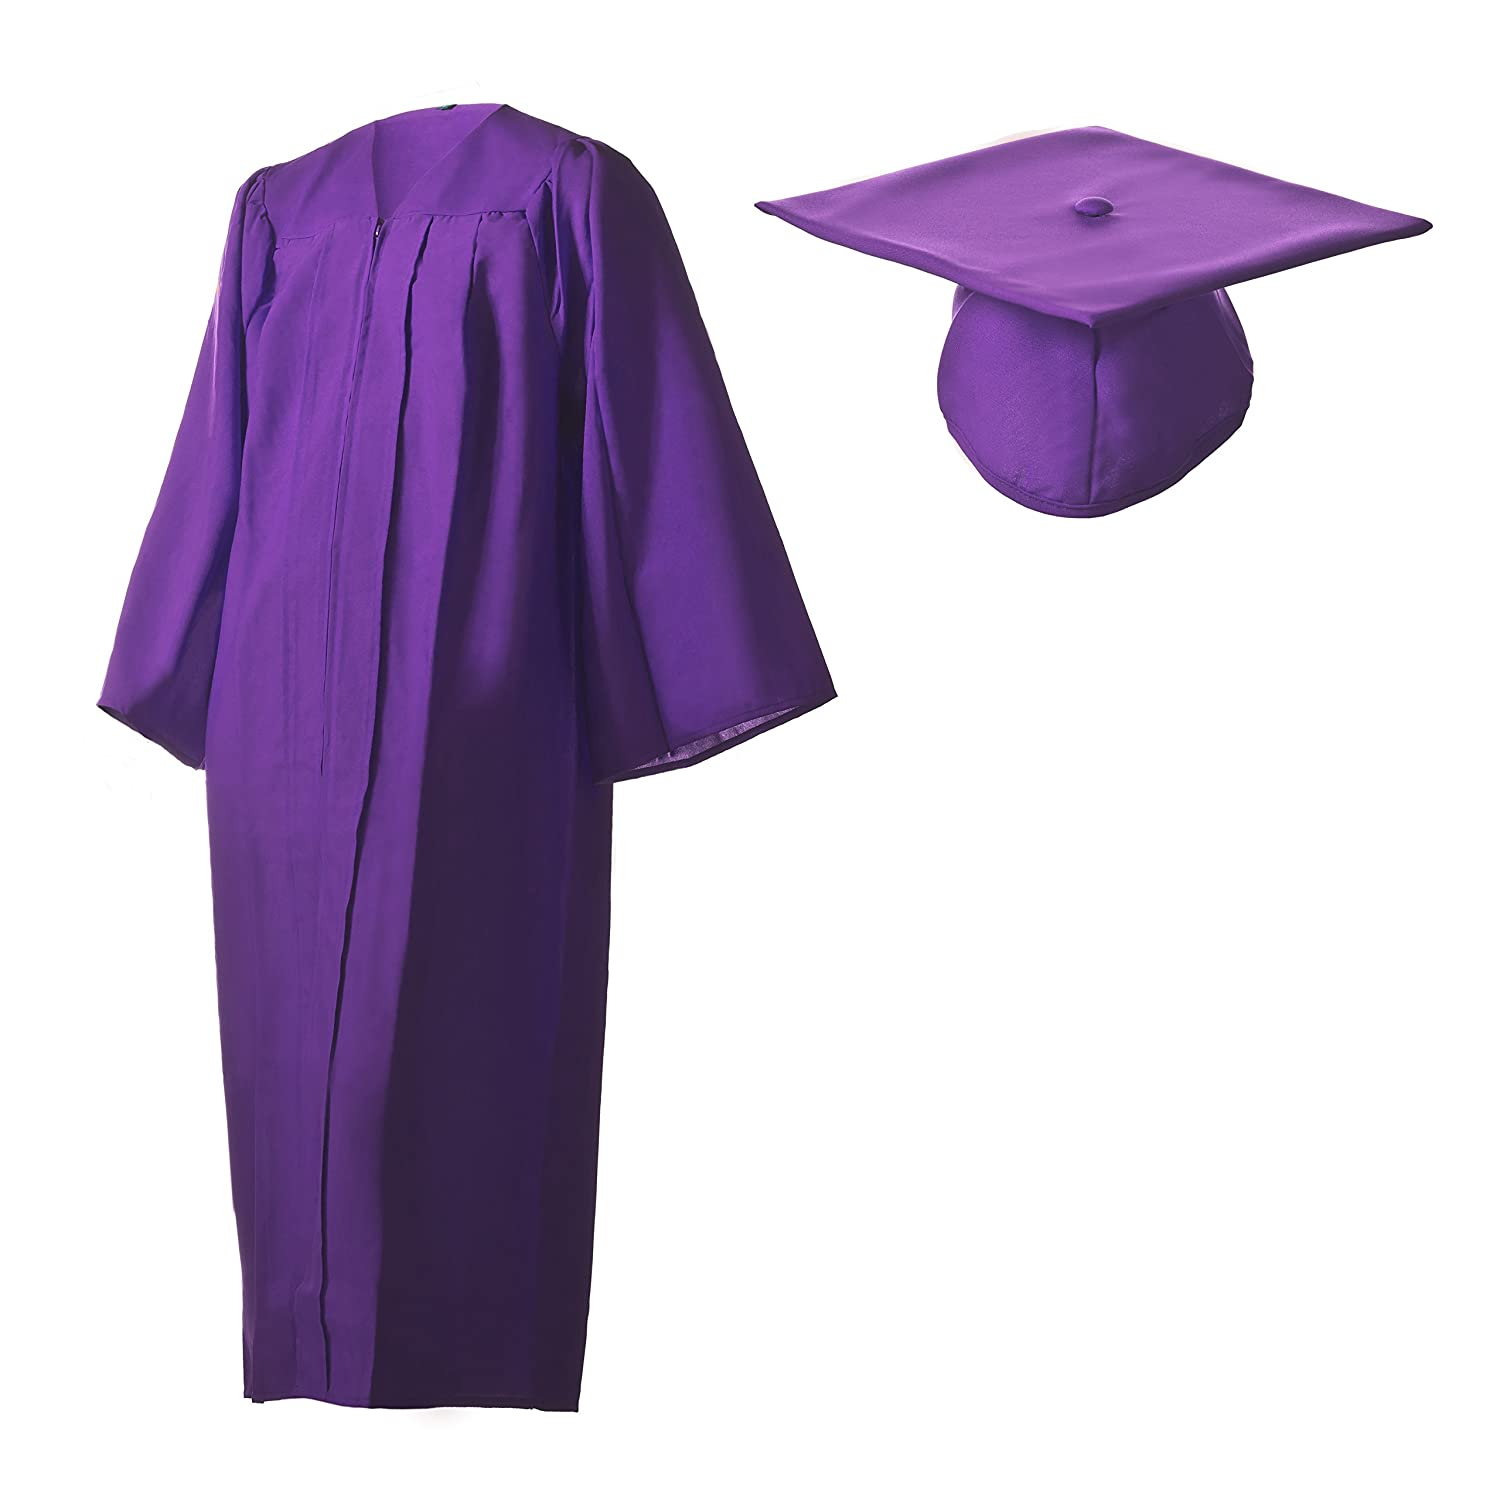 71f7d8503b1 Amazon.com  Graduation Cap and Gown Set Matte Purple in Multiple Sizes   Sports   Outdoors